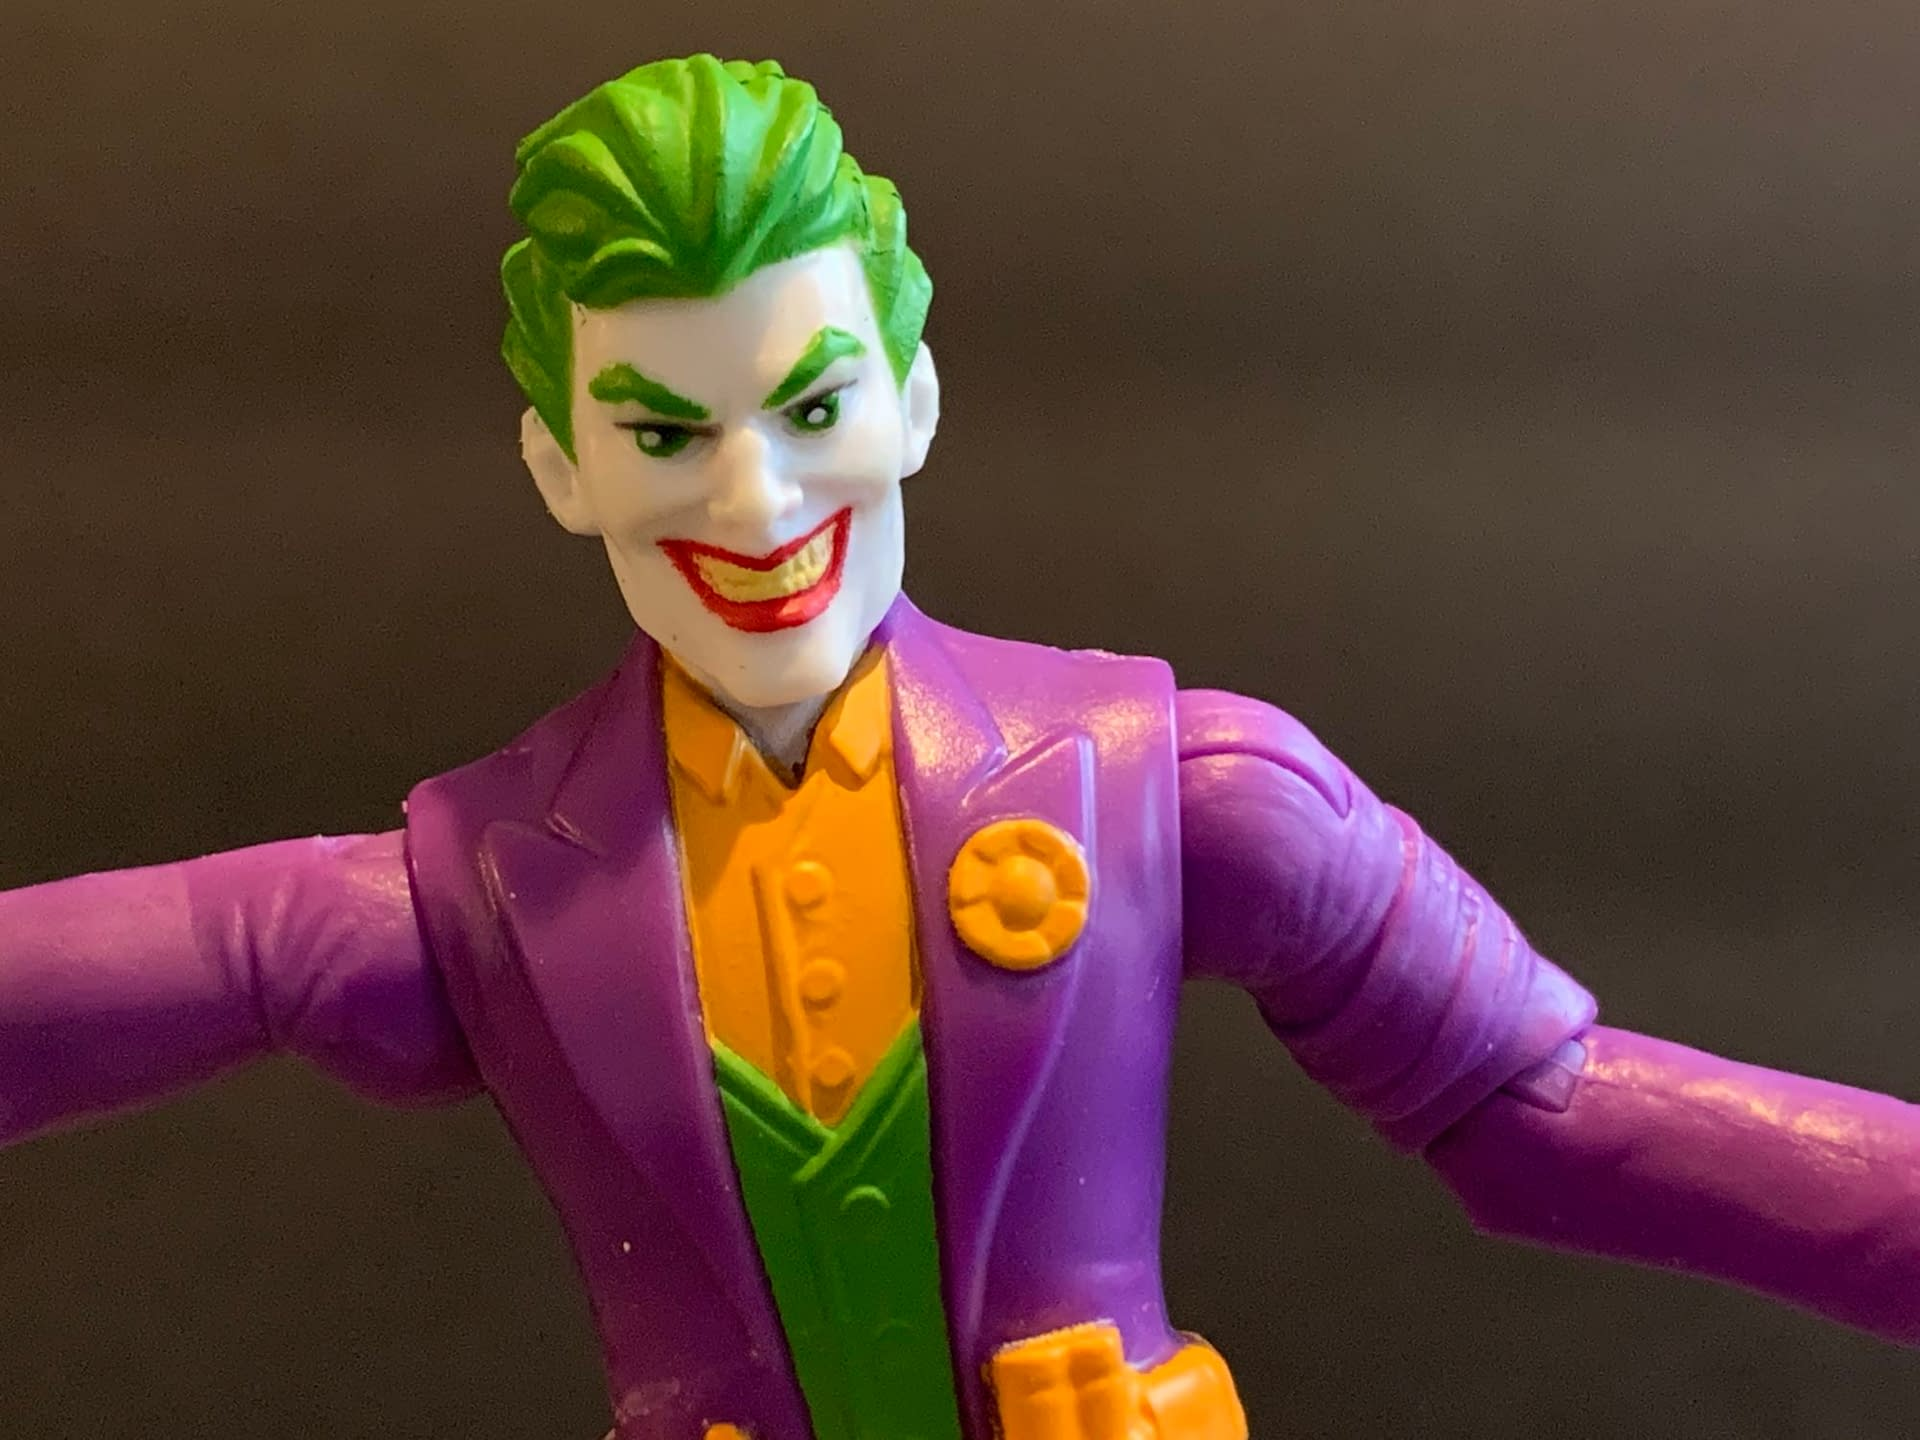 Let's Take A Look At Spin Master's New DC Comics Joker Figures